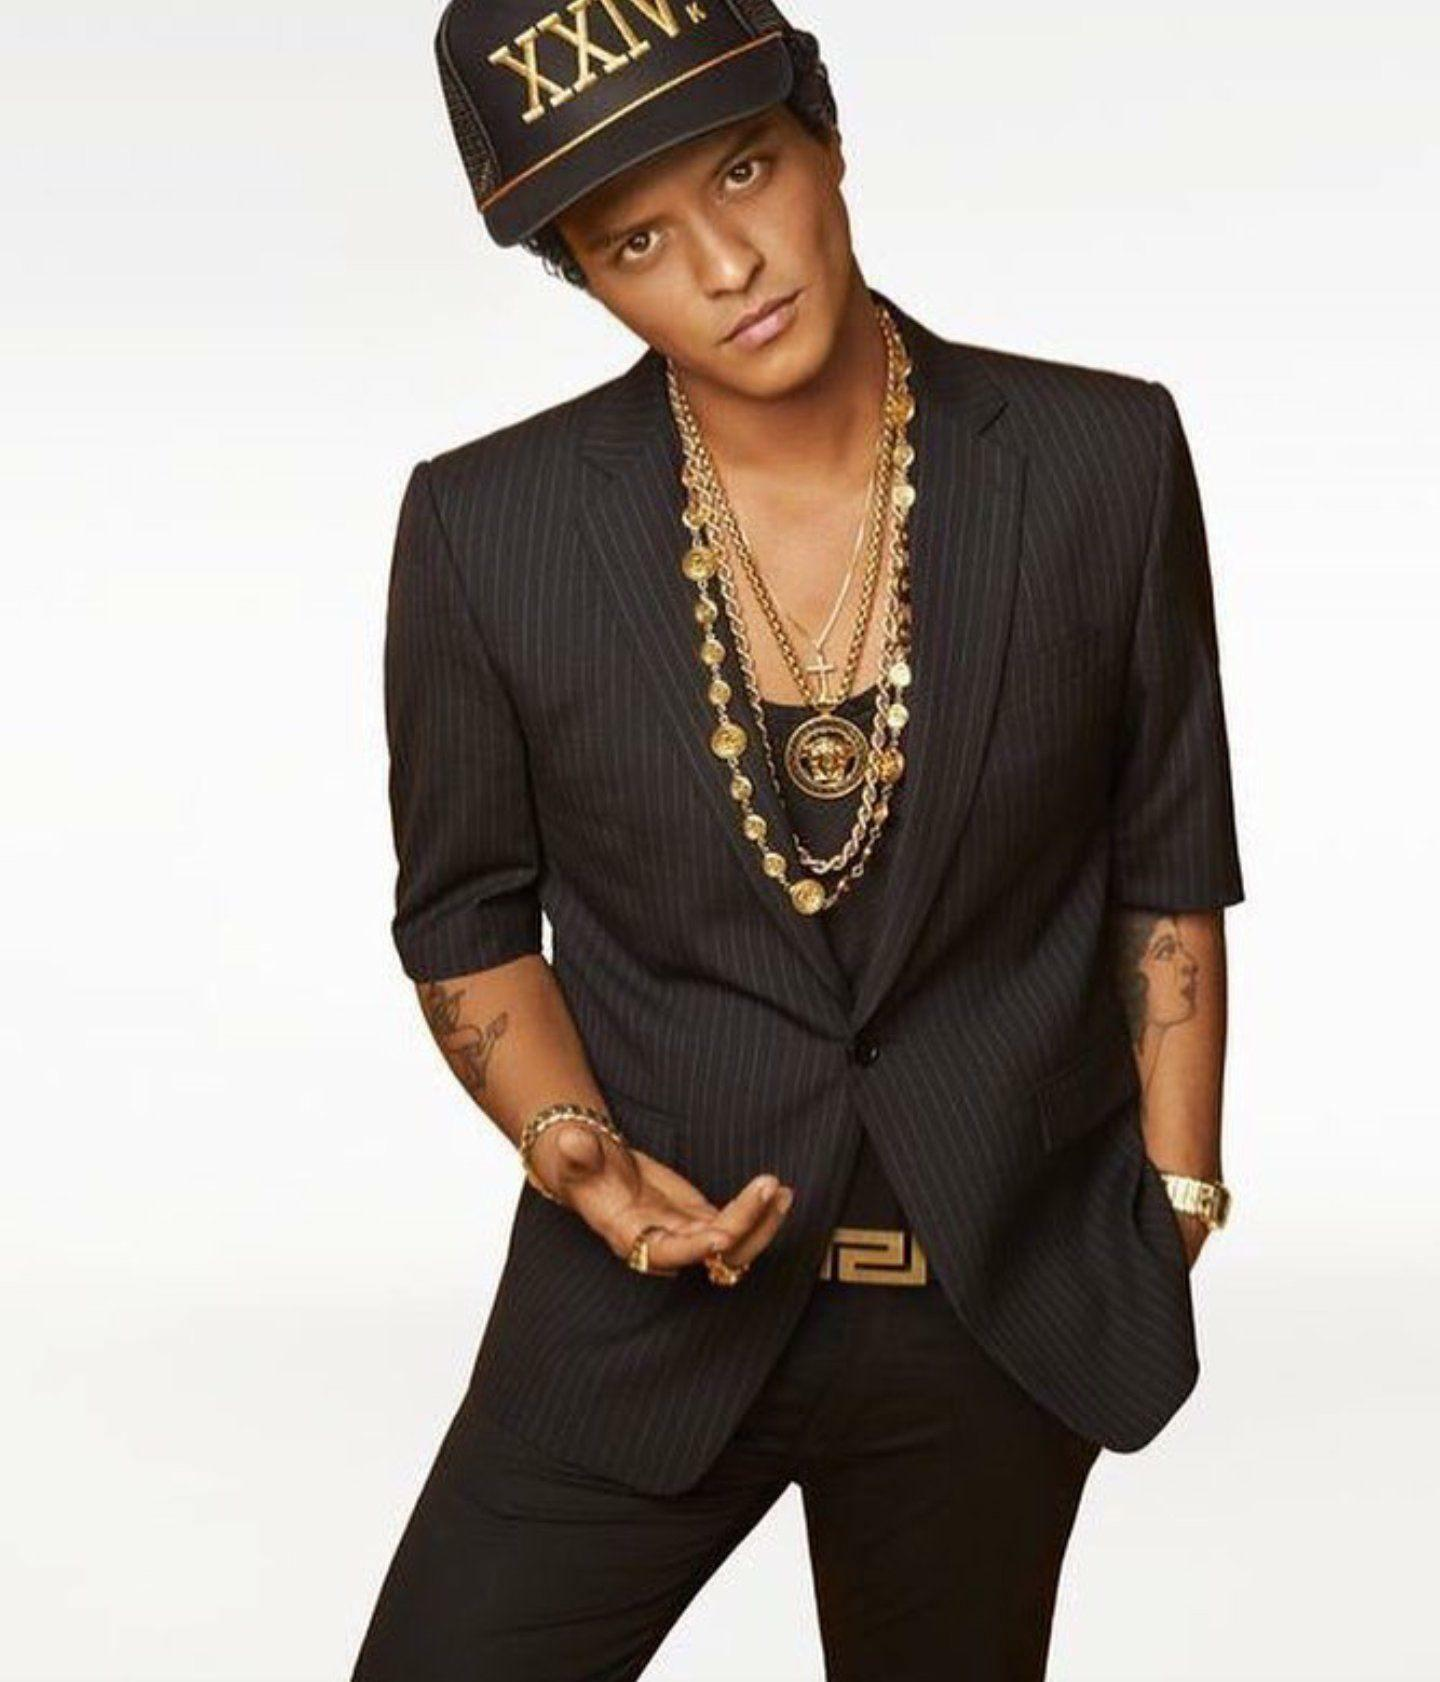 Bruno Mars in his 24K Magic album cover